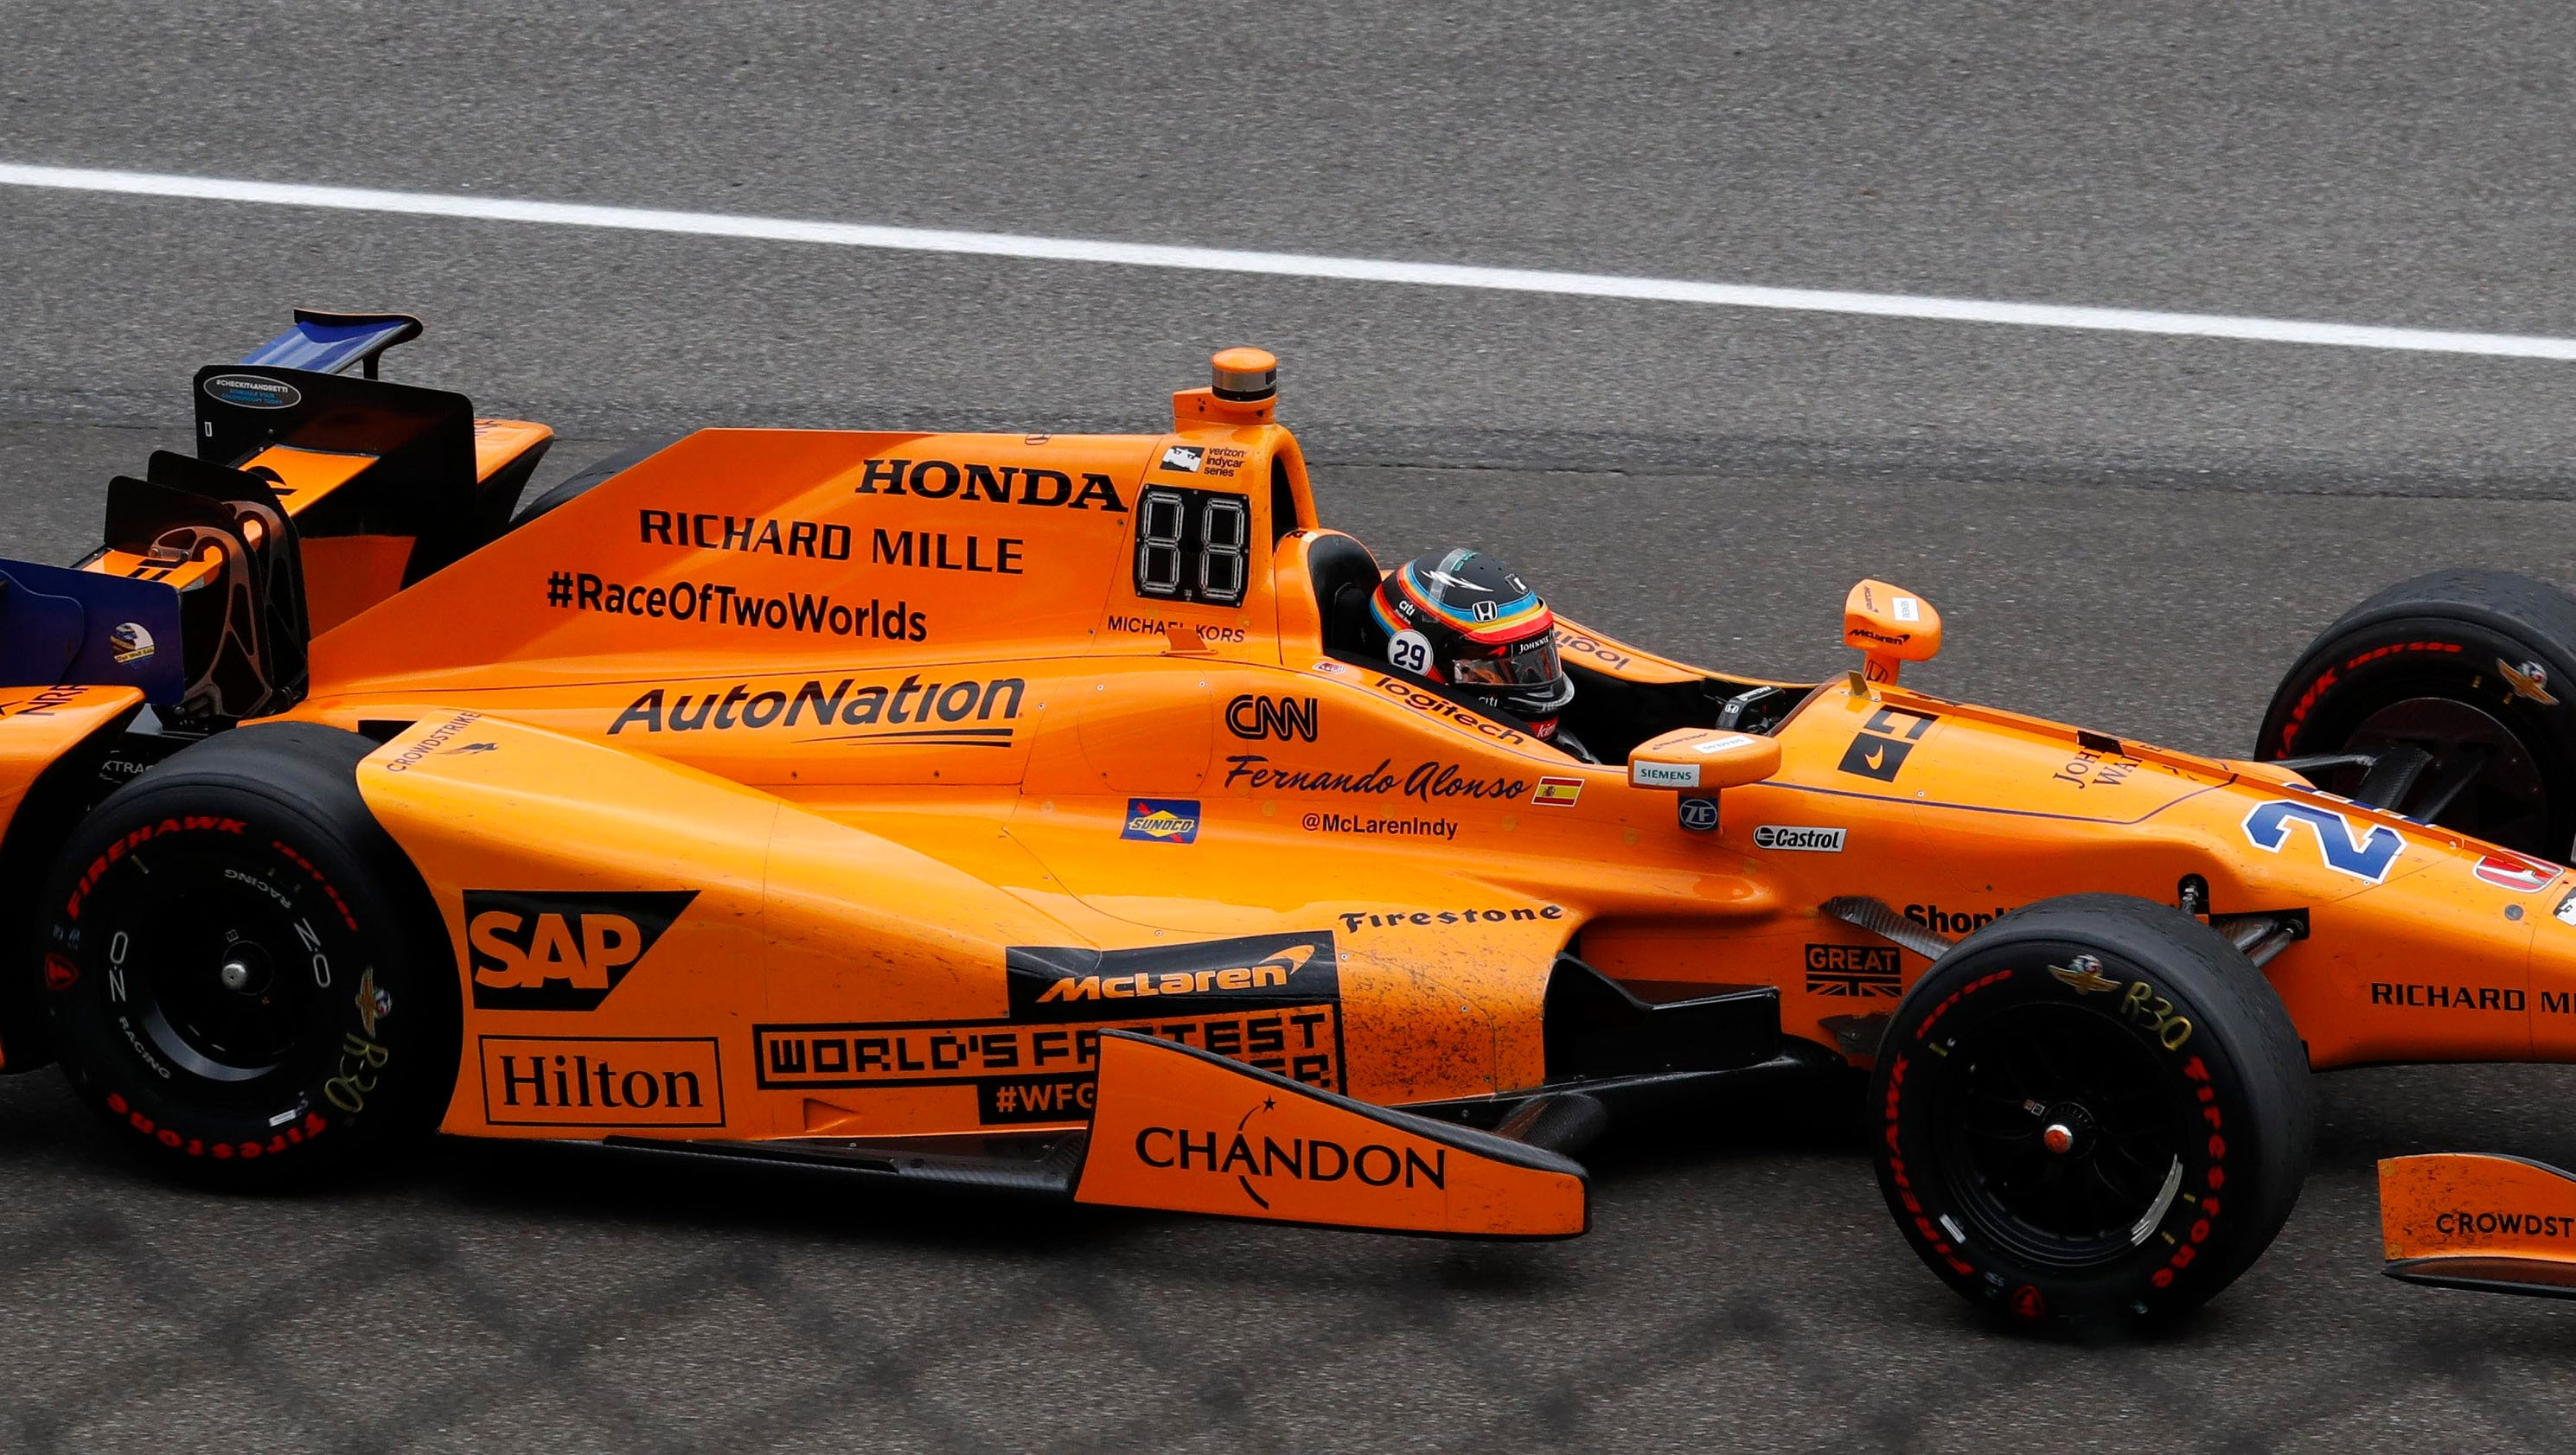 Fernando Alonso silences critics with spectacular Indianapolis 500 run